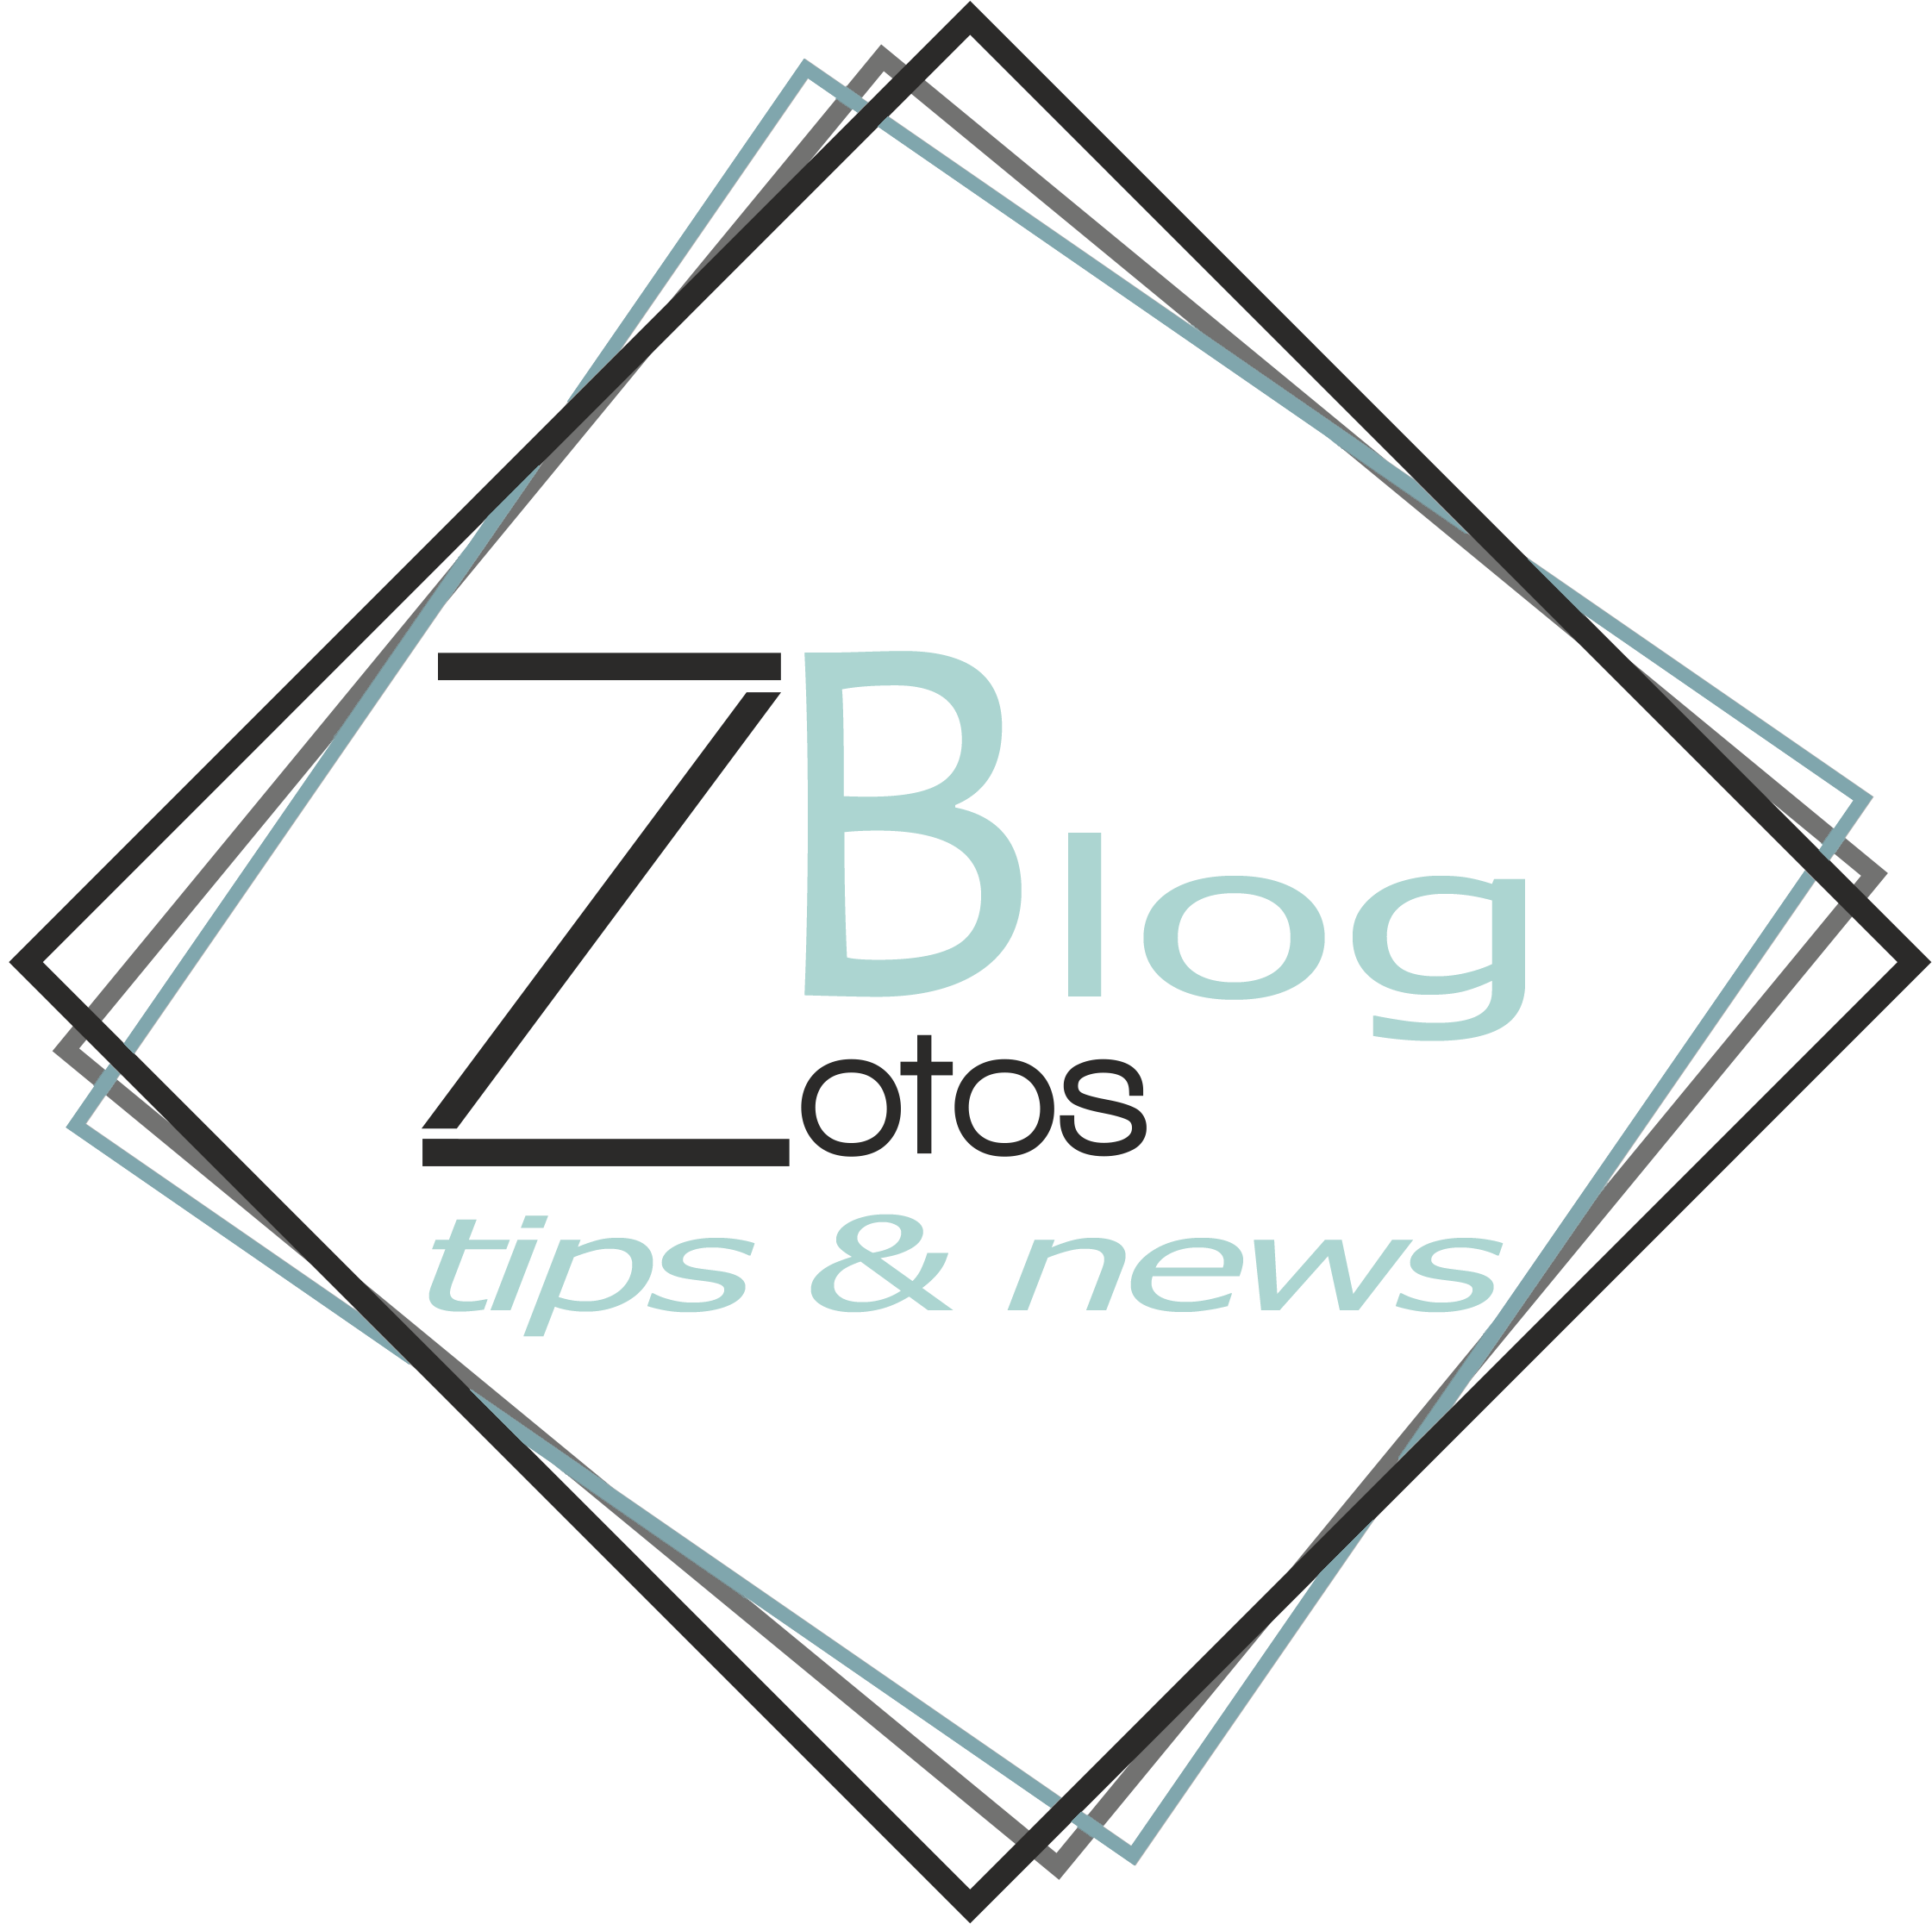 blog tips news zotos